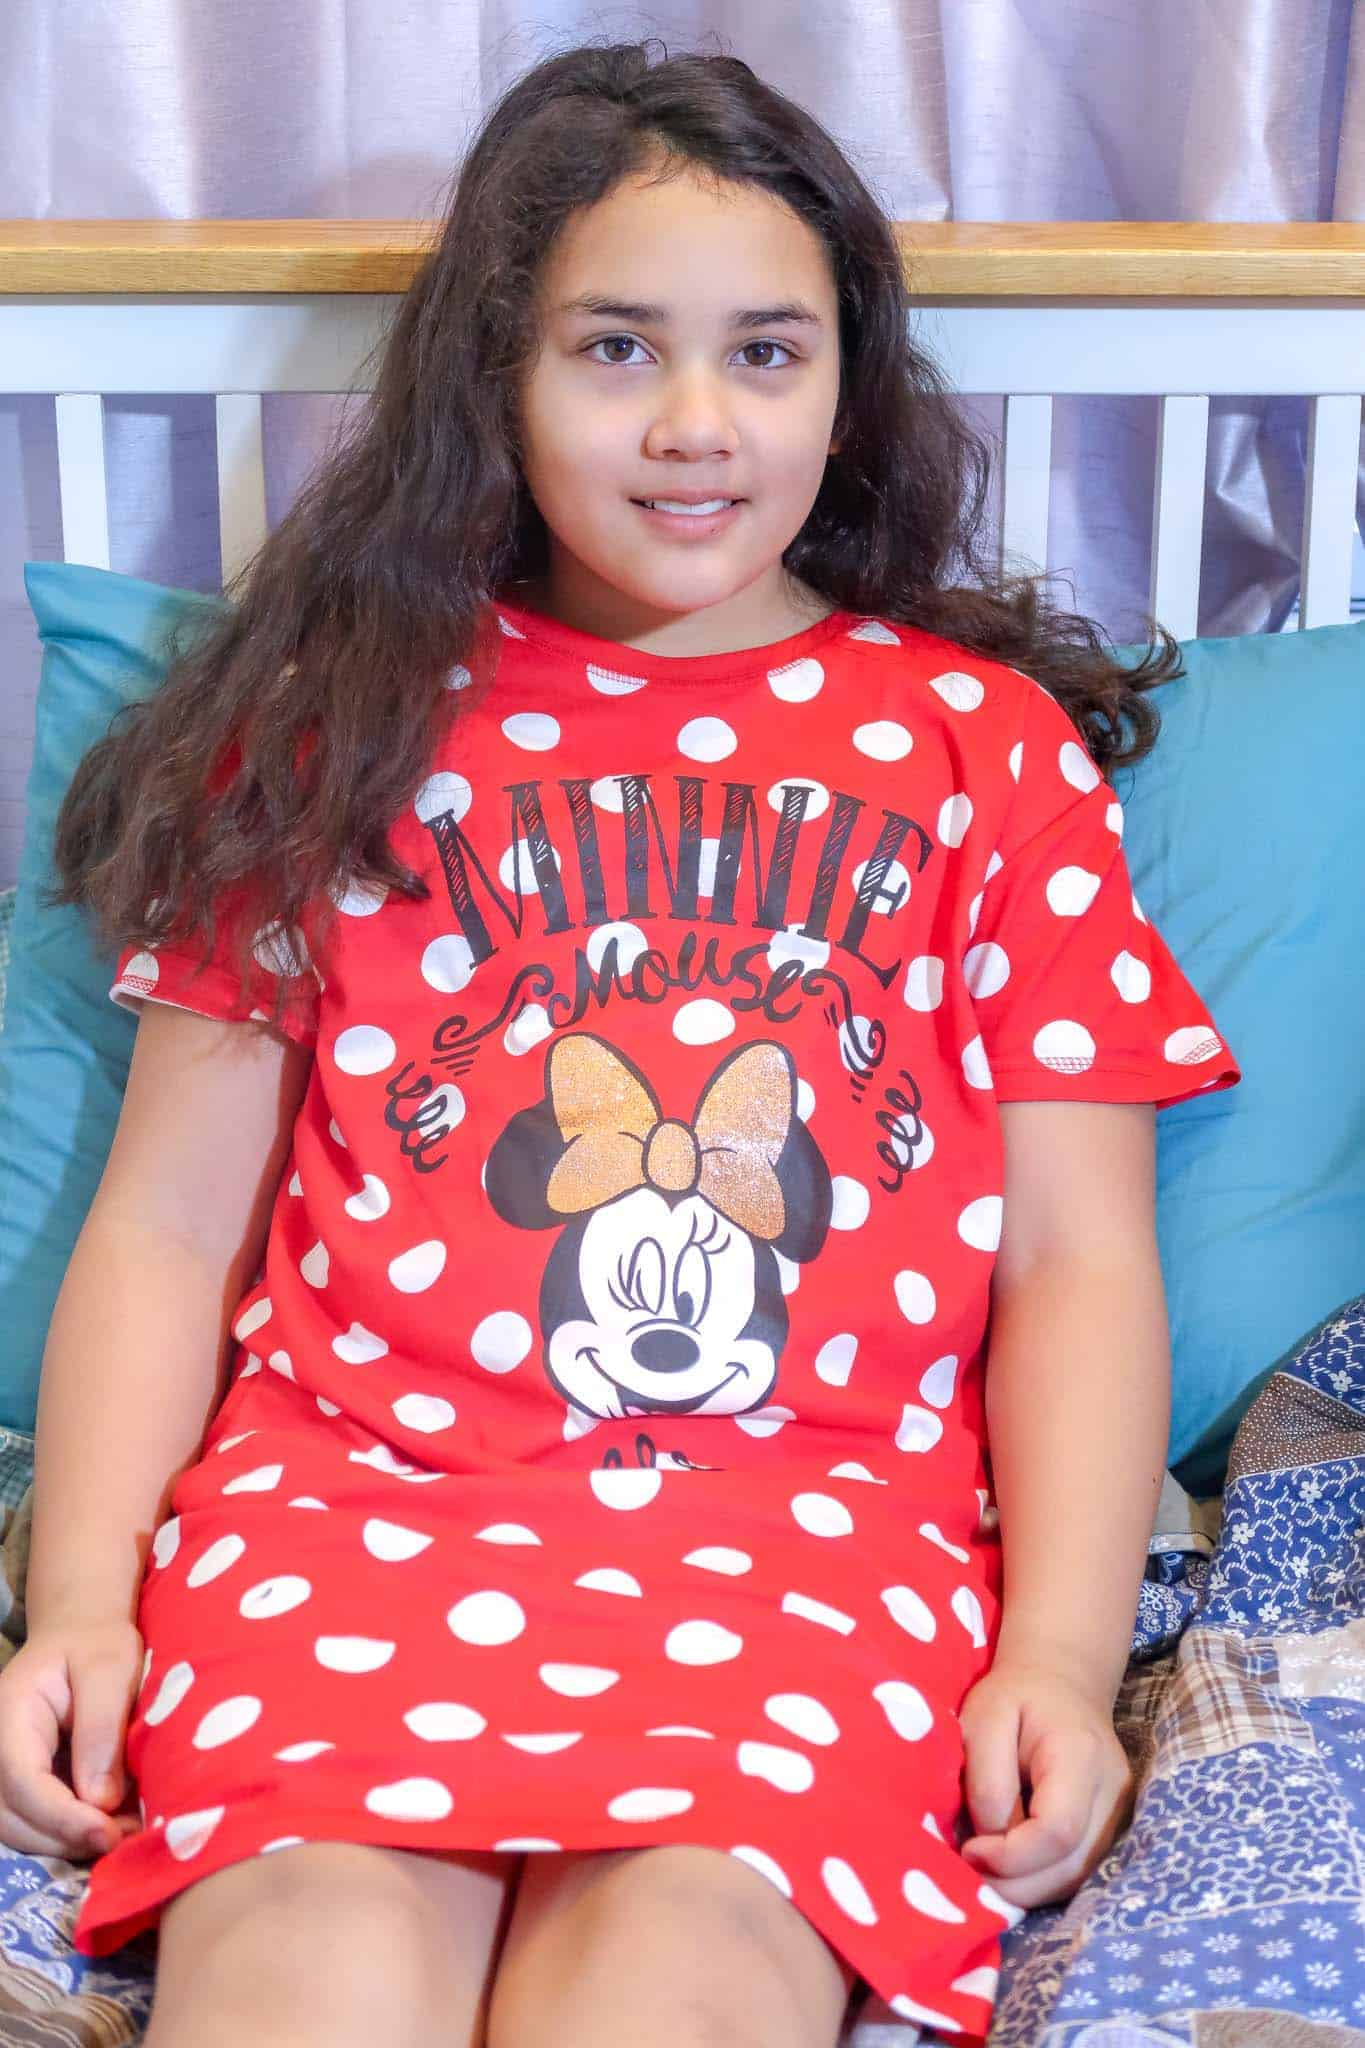 primark store disney clothes nighty for kids nightwear photo